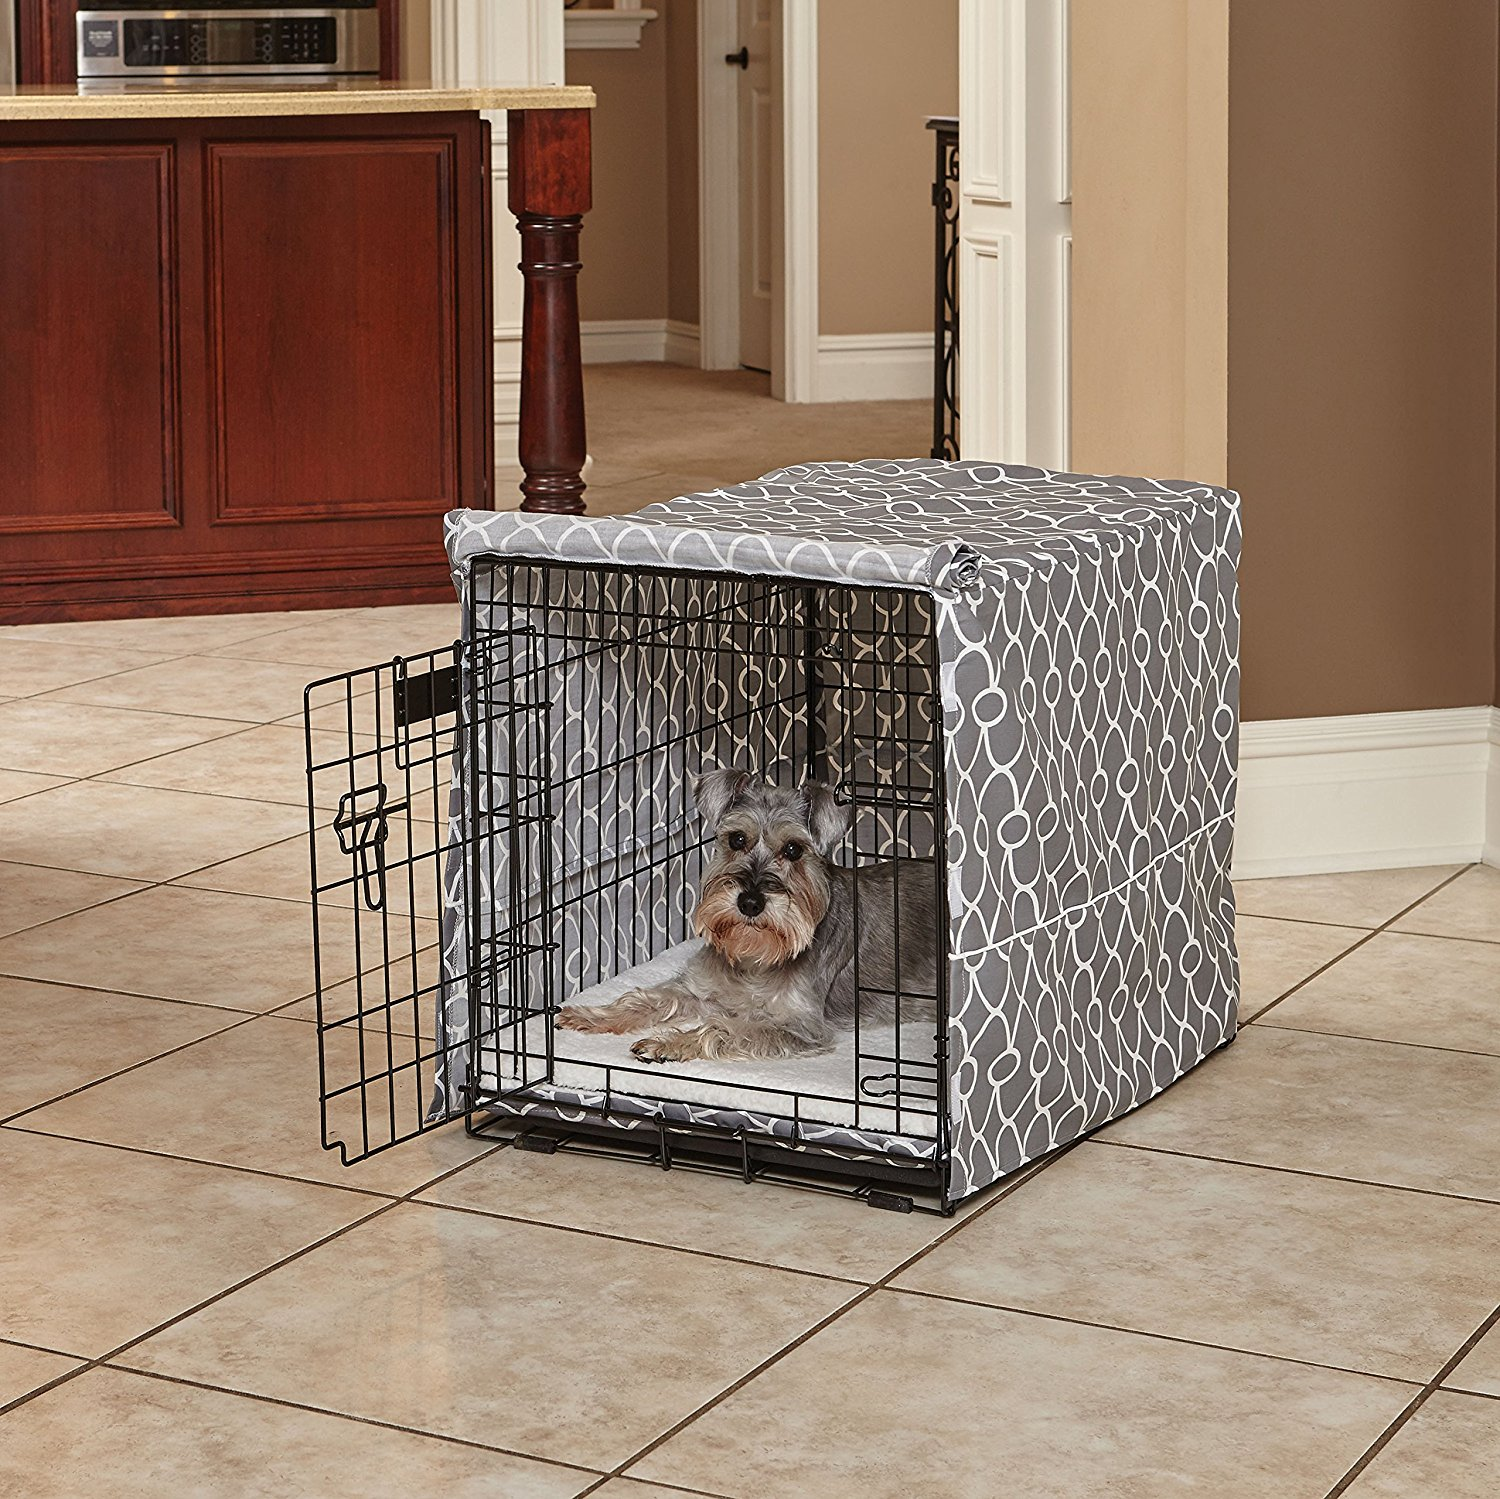 Cockapoo Crate Cover - This isn't a necessity for every dog, but can really help some pups as it can be hard to relax if everything around them is still visible! If you don't have a quiet, separate room in which to place puppy's crate, this is a great option to help them understand it is time to calm down. It makes it very cave-like and helps them relax and rest!https://amzn.to/2MQJlws